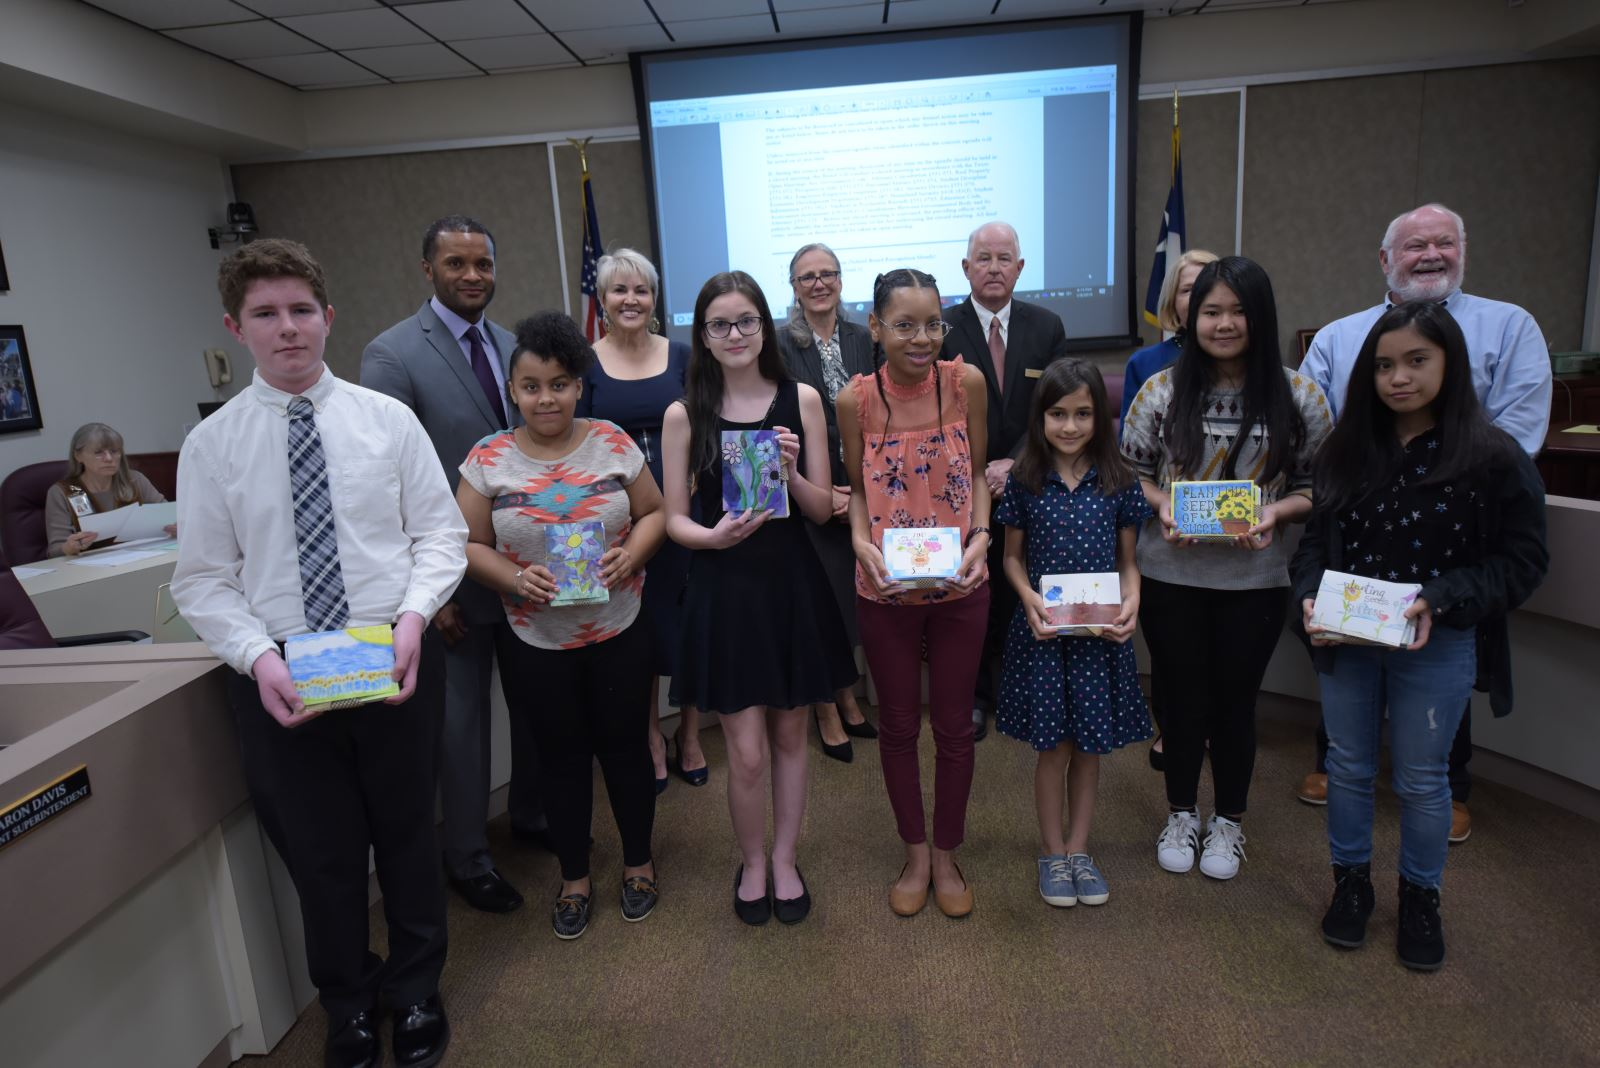 Students presenting the school board their award winning card designs.